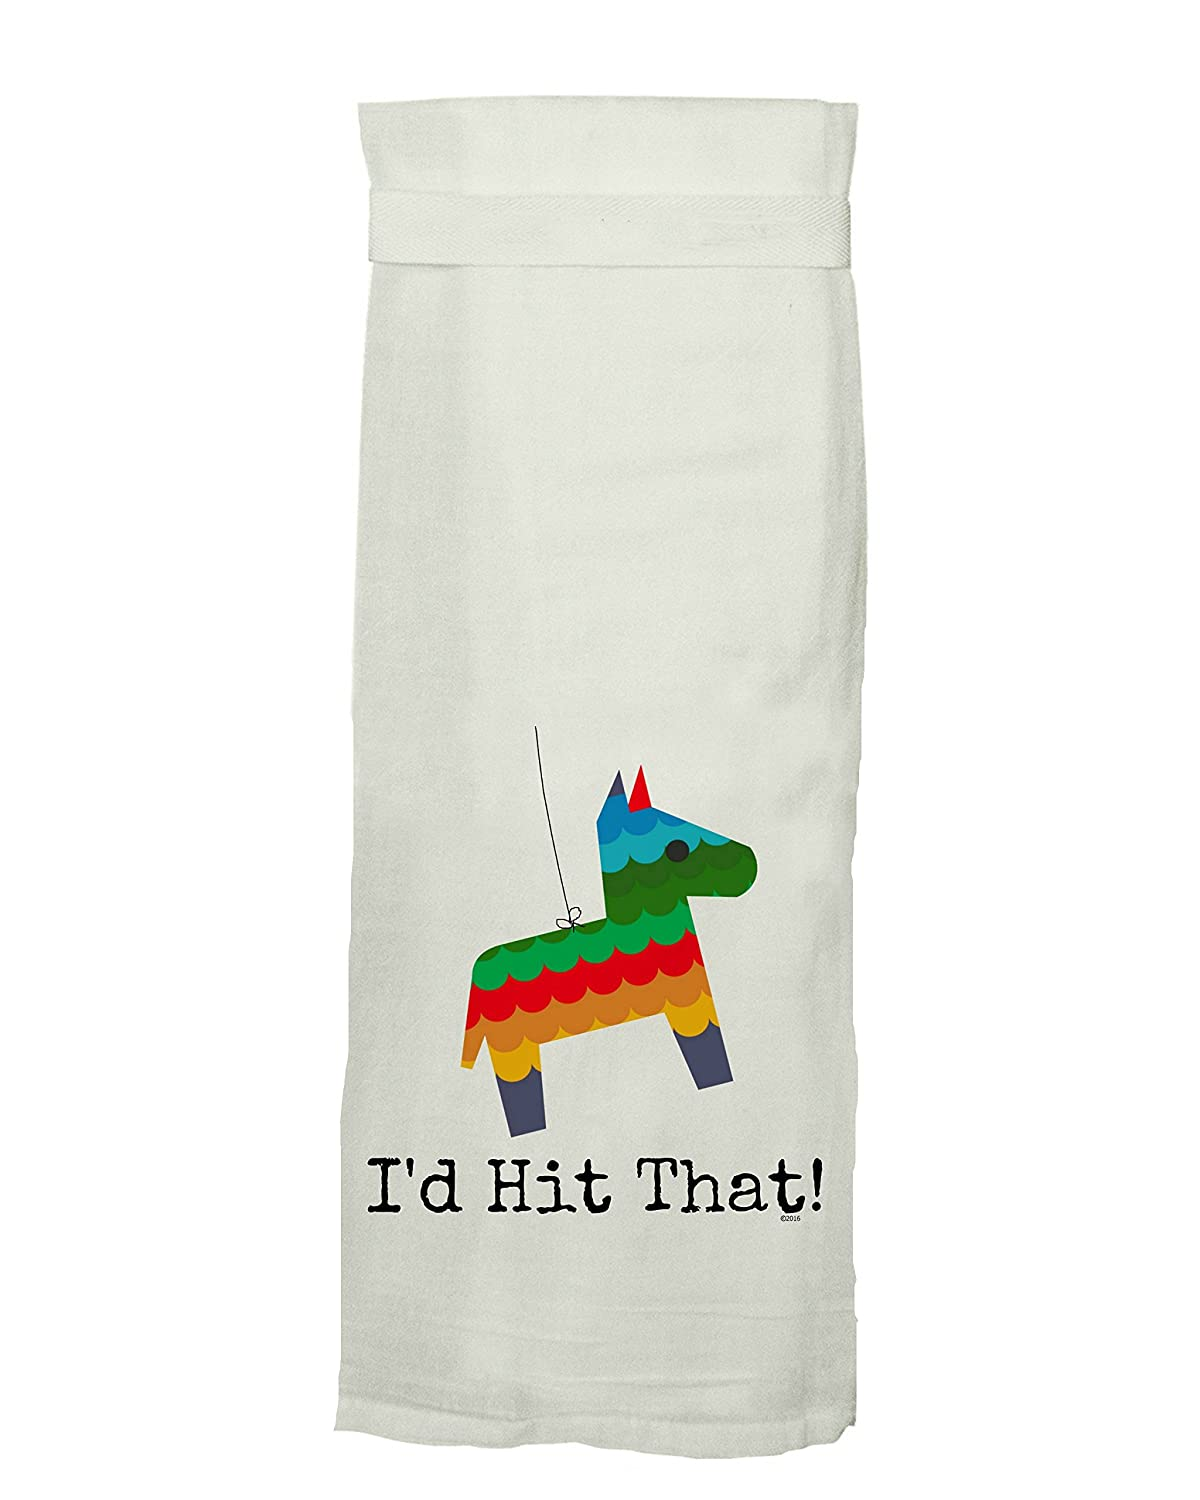 Adult Humor with Hang Tight Design from Id HIT That Made with A Super Absorbent Quick Dry Made with A Super Absorbent Twisted Wares Kitchen Towel Lint Free 100/% Cotton Flour Sack Adult Humor with Hang Tight Design from I/'d HIT That